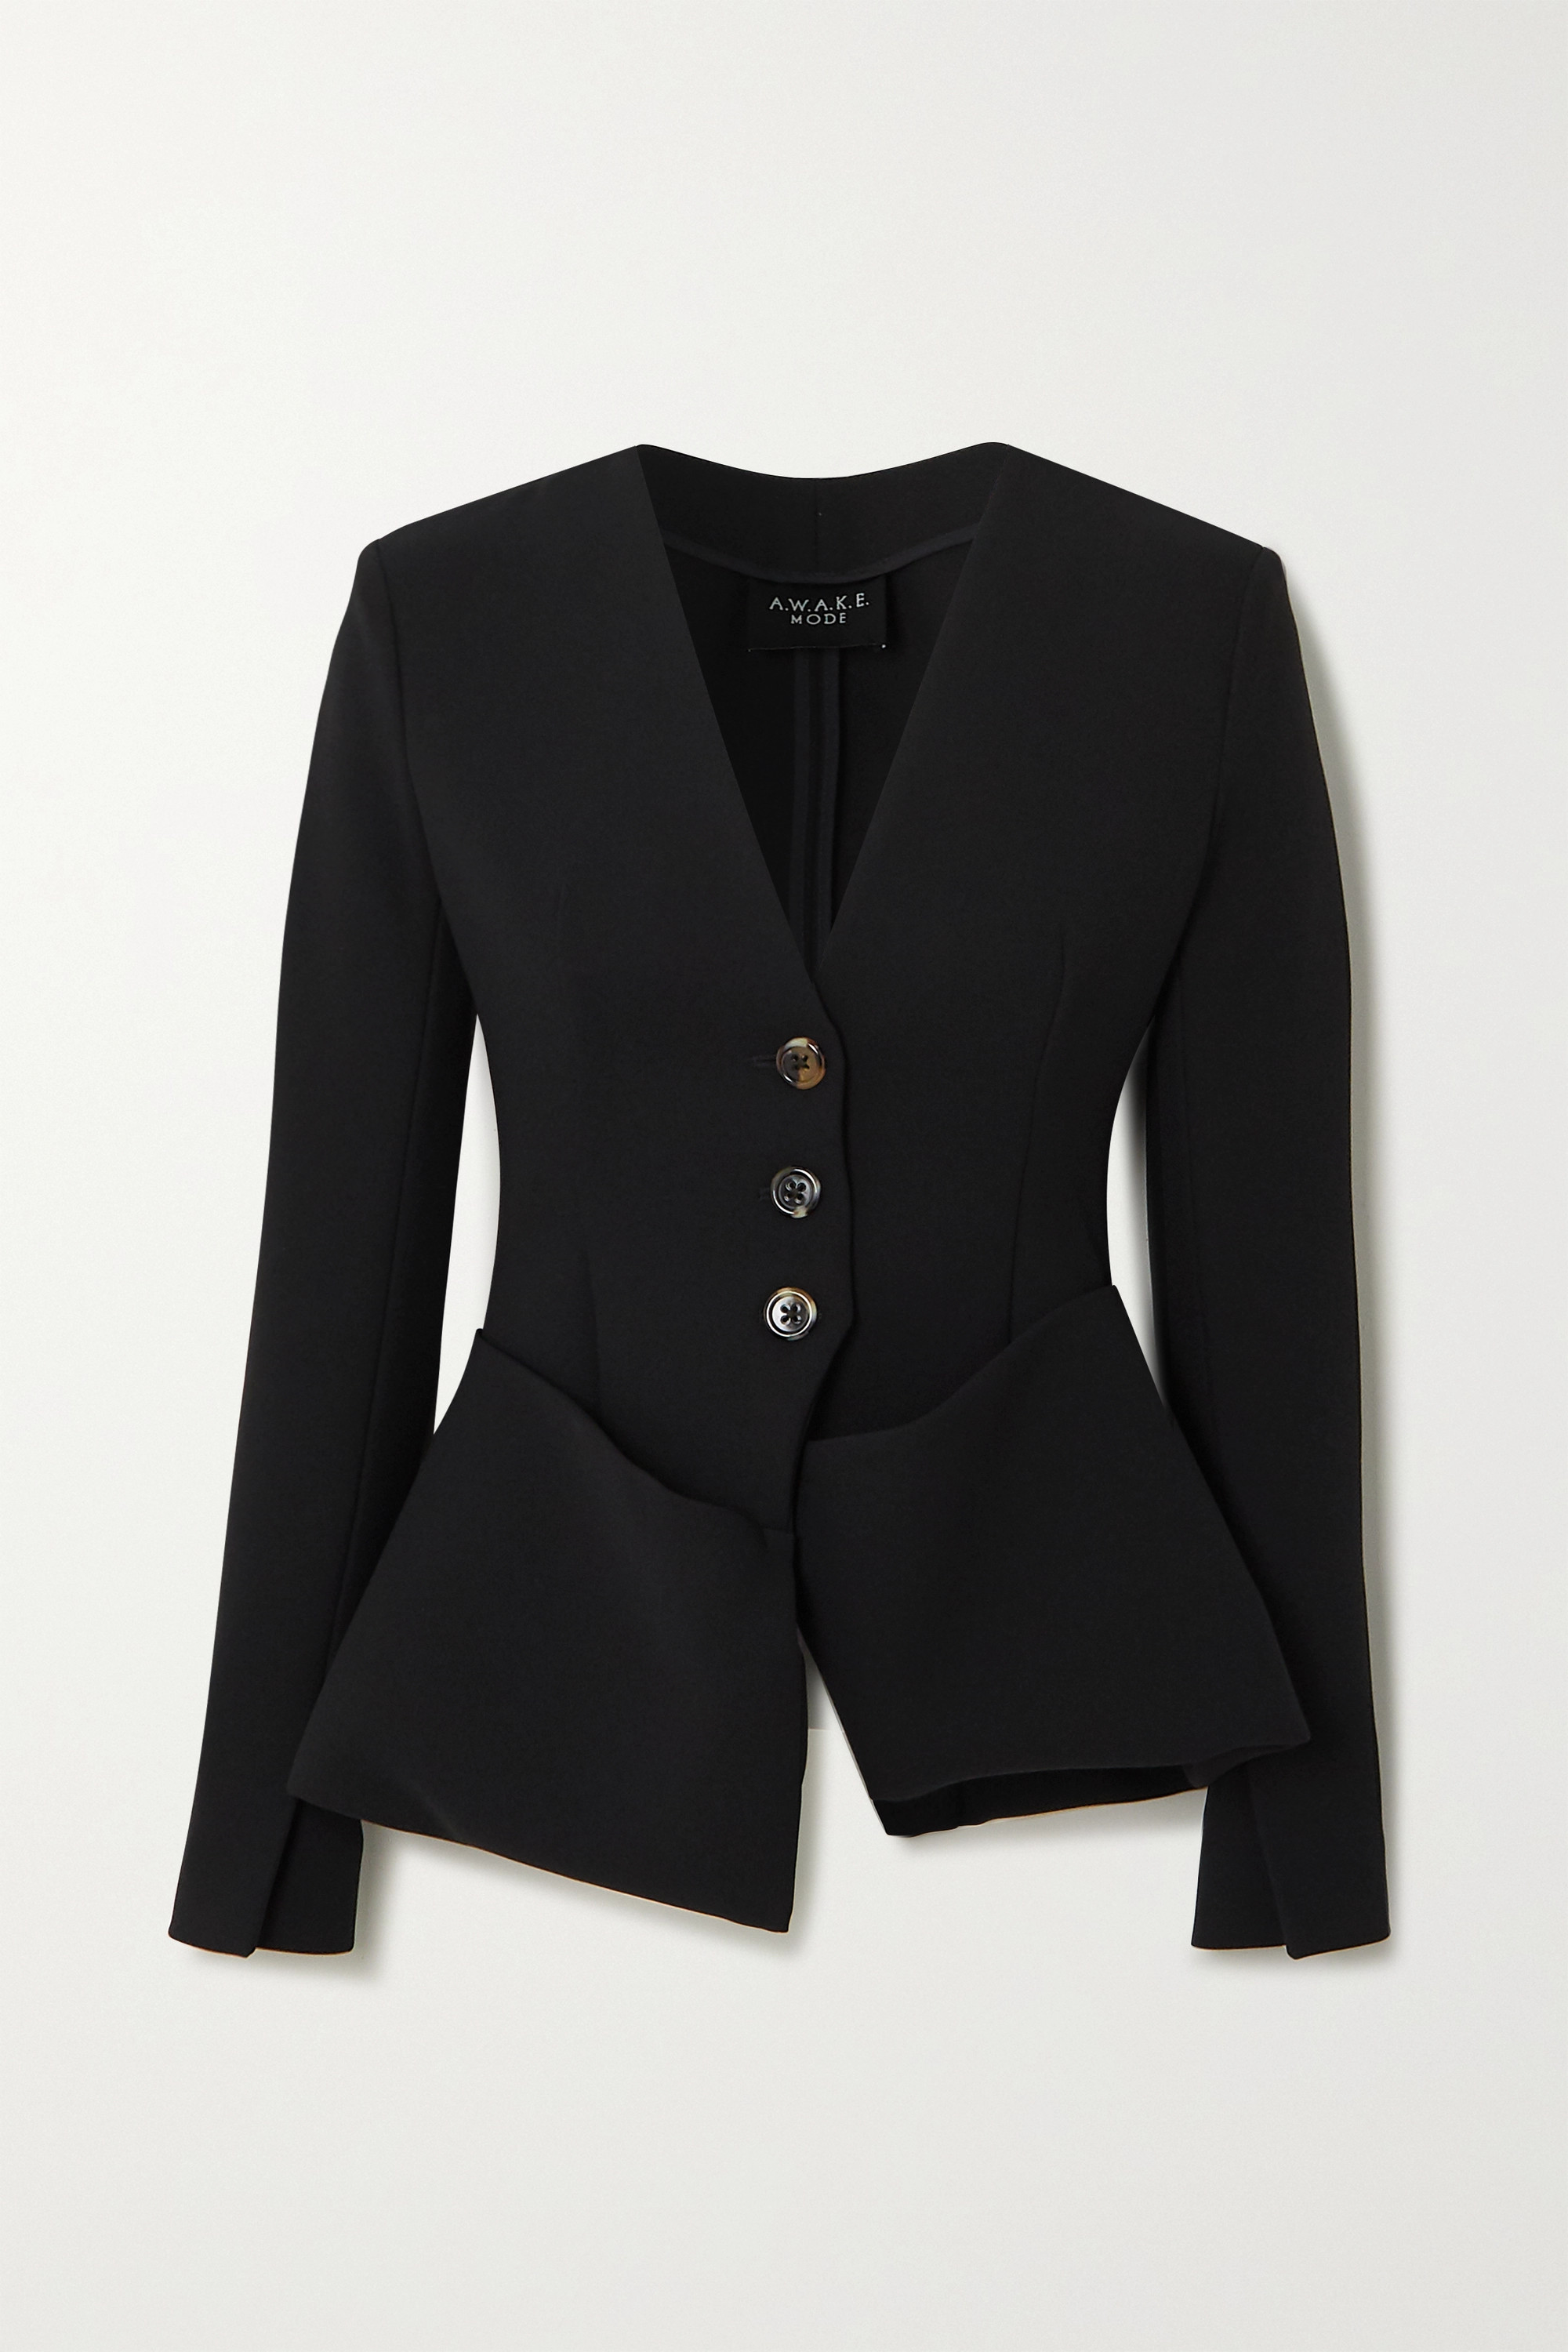 https://cache.net-a-porter.com/images/products/1217034/1217034_in_2000.jpg